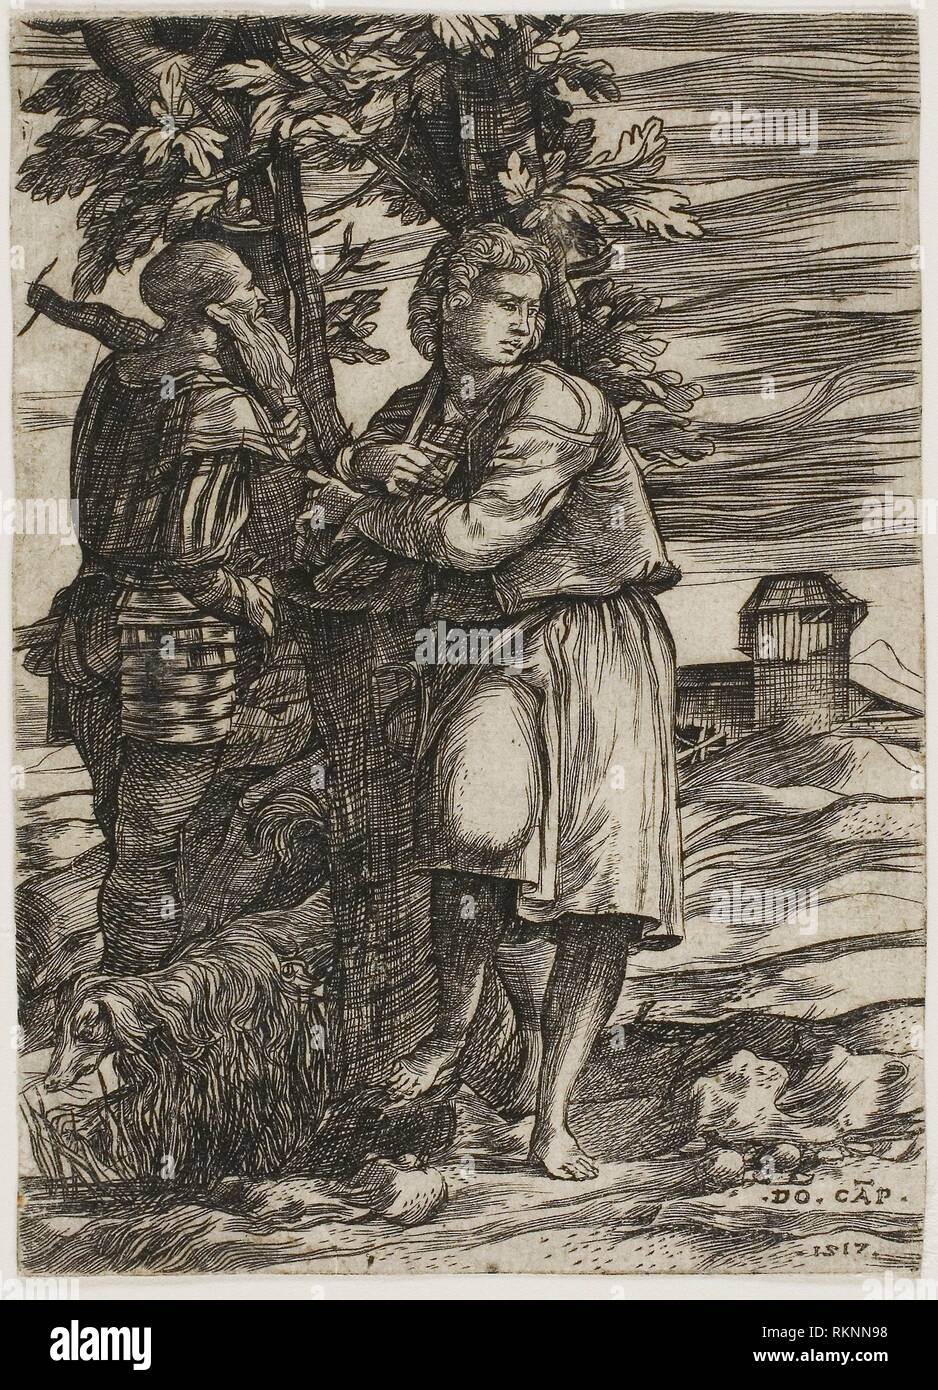 Shepherd and Old Warrior - 1517 - Domenico Campagnola Italian, c. 1500-1564